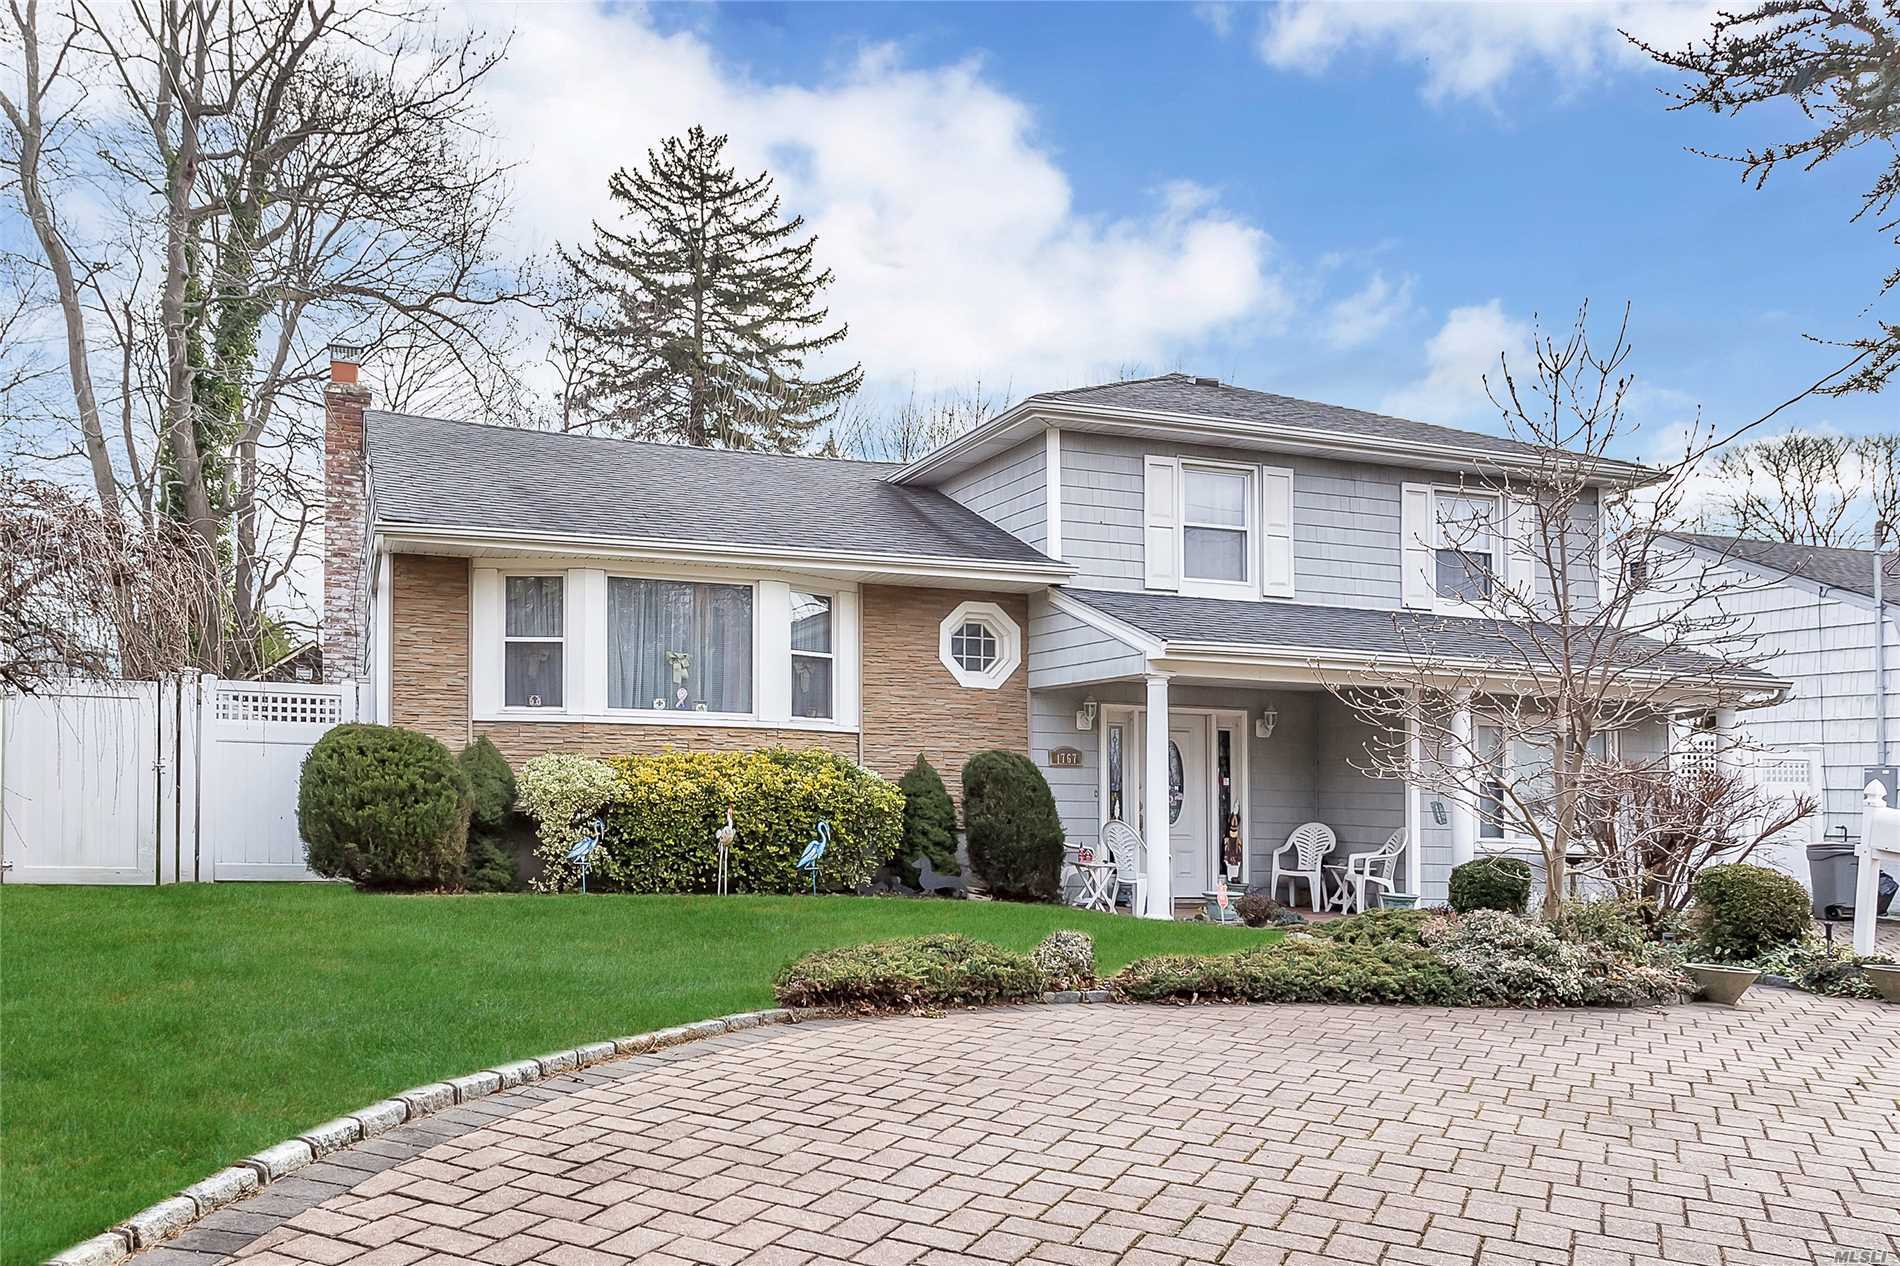 Large Updated Split In Desirable Wantagh Woods Section, Conveniently Located Close To Major Highways, Shopping, Schools, Places Of Worship And The Lirr. Beautiful Pavers, Circular Driveway, Gleaming Hardwood Floors, Marble Entryway, Full Finished Basement, Updated Siding, Kitchen And Three Full Bathrooms.